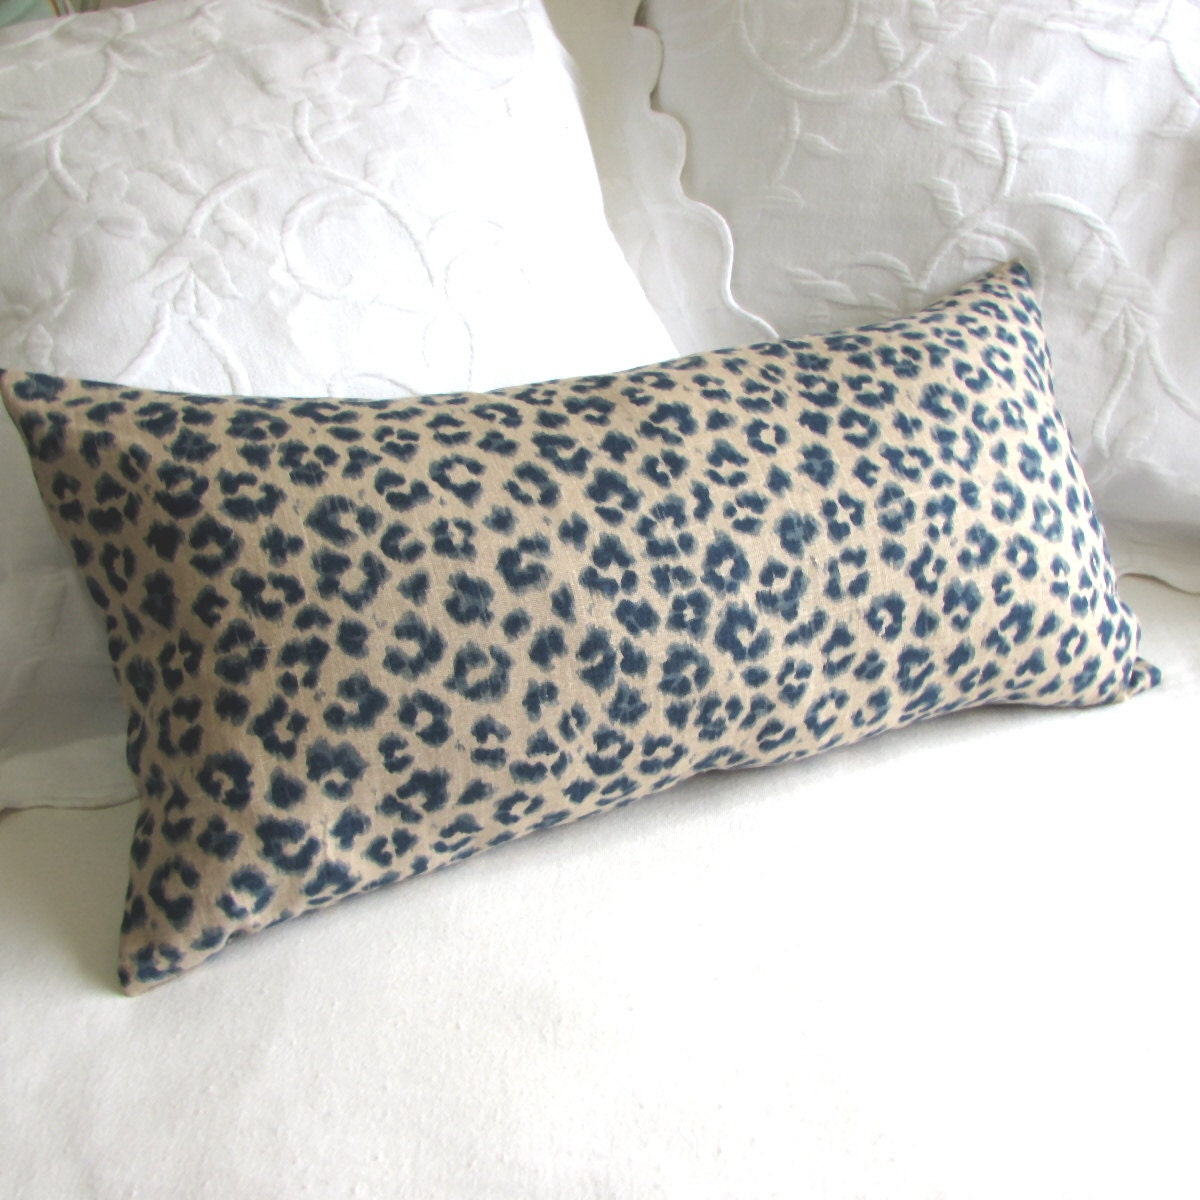 Throw Pillow Bolster : CHEETAH LINEN lumbar bolster throw pillow 13x26 insert